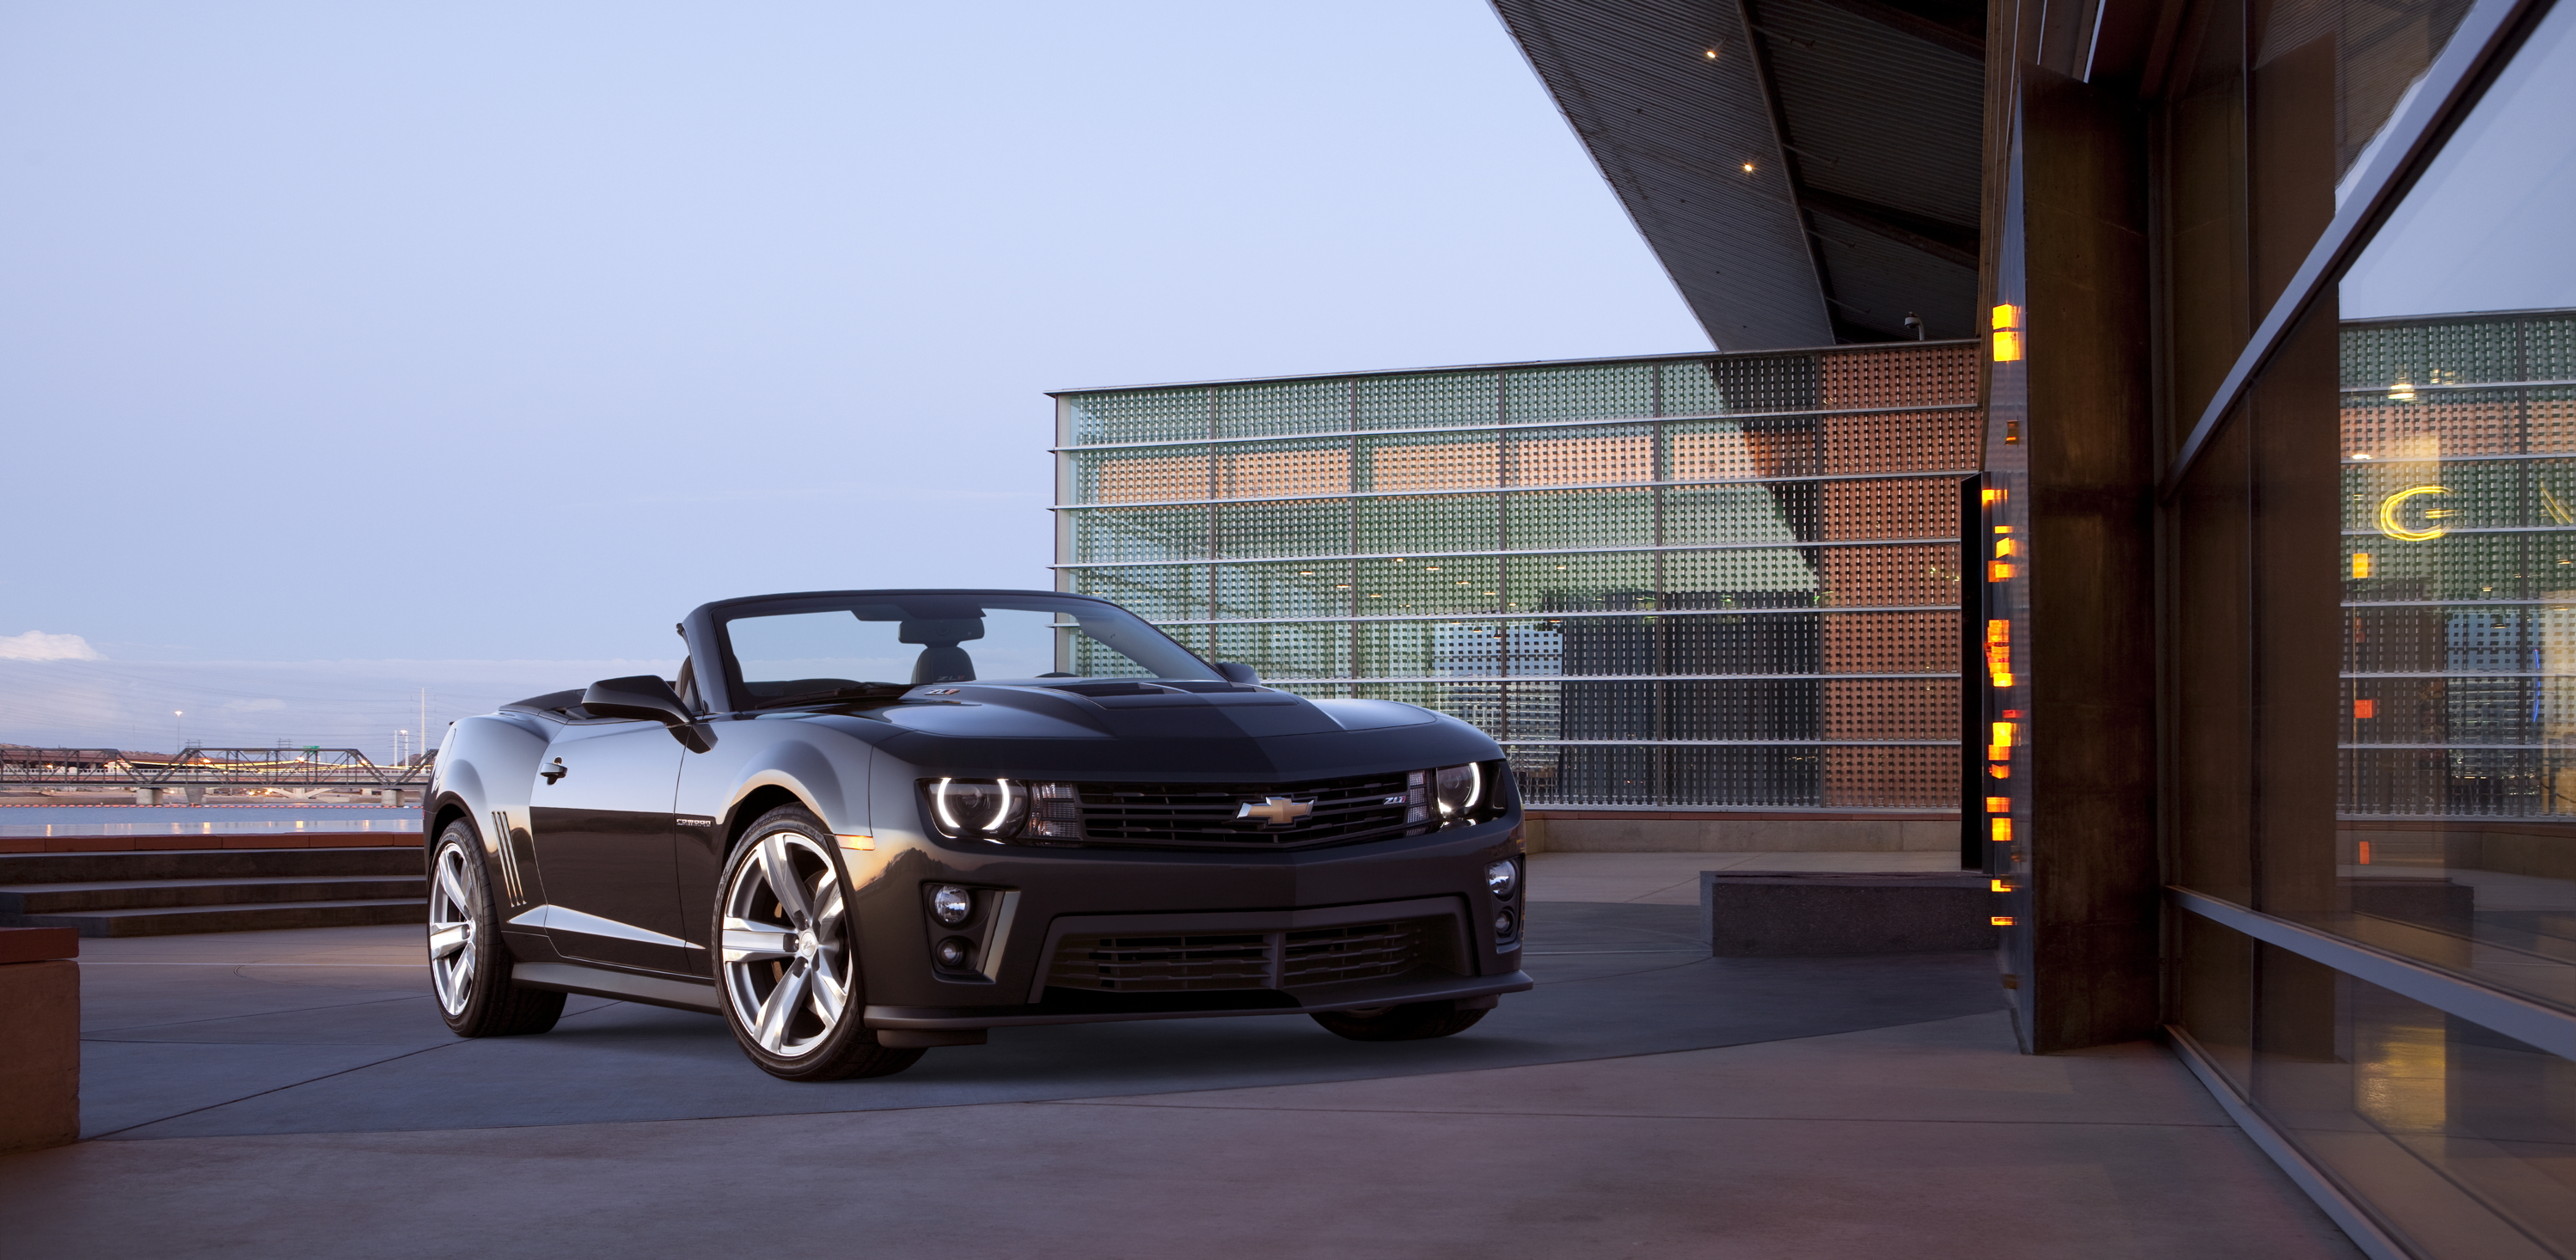 2014   2015 Chevrolet Camaro ZL1 Review   Top Speed. »